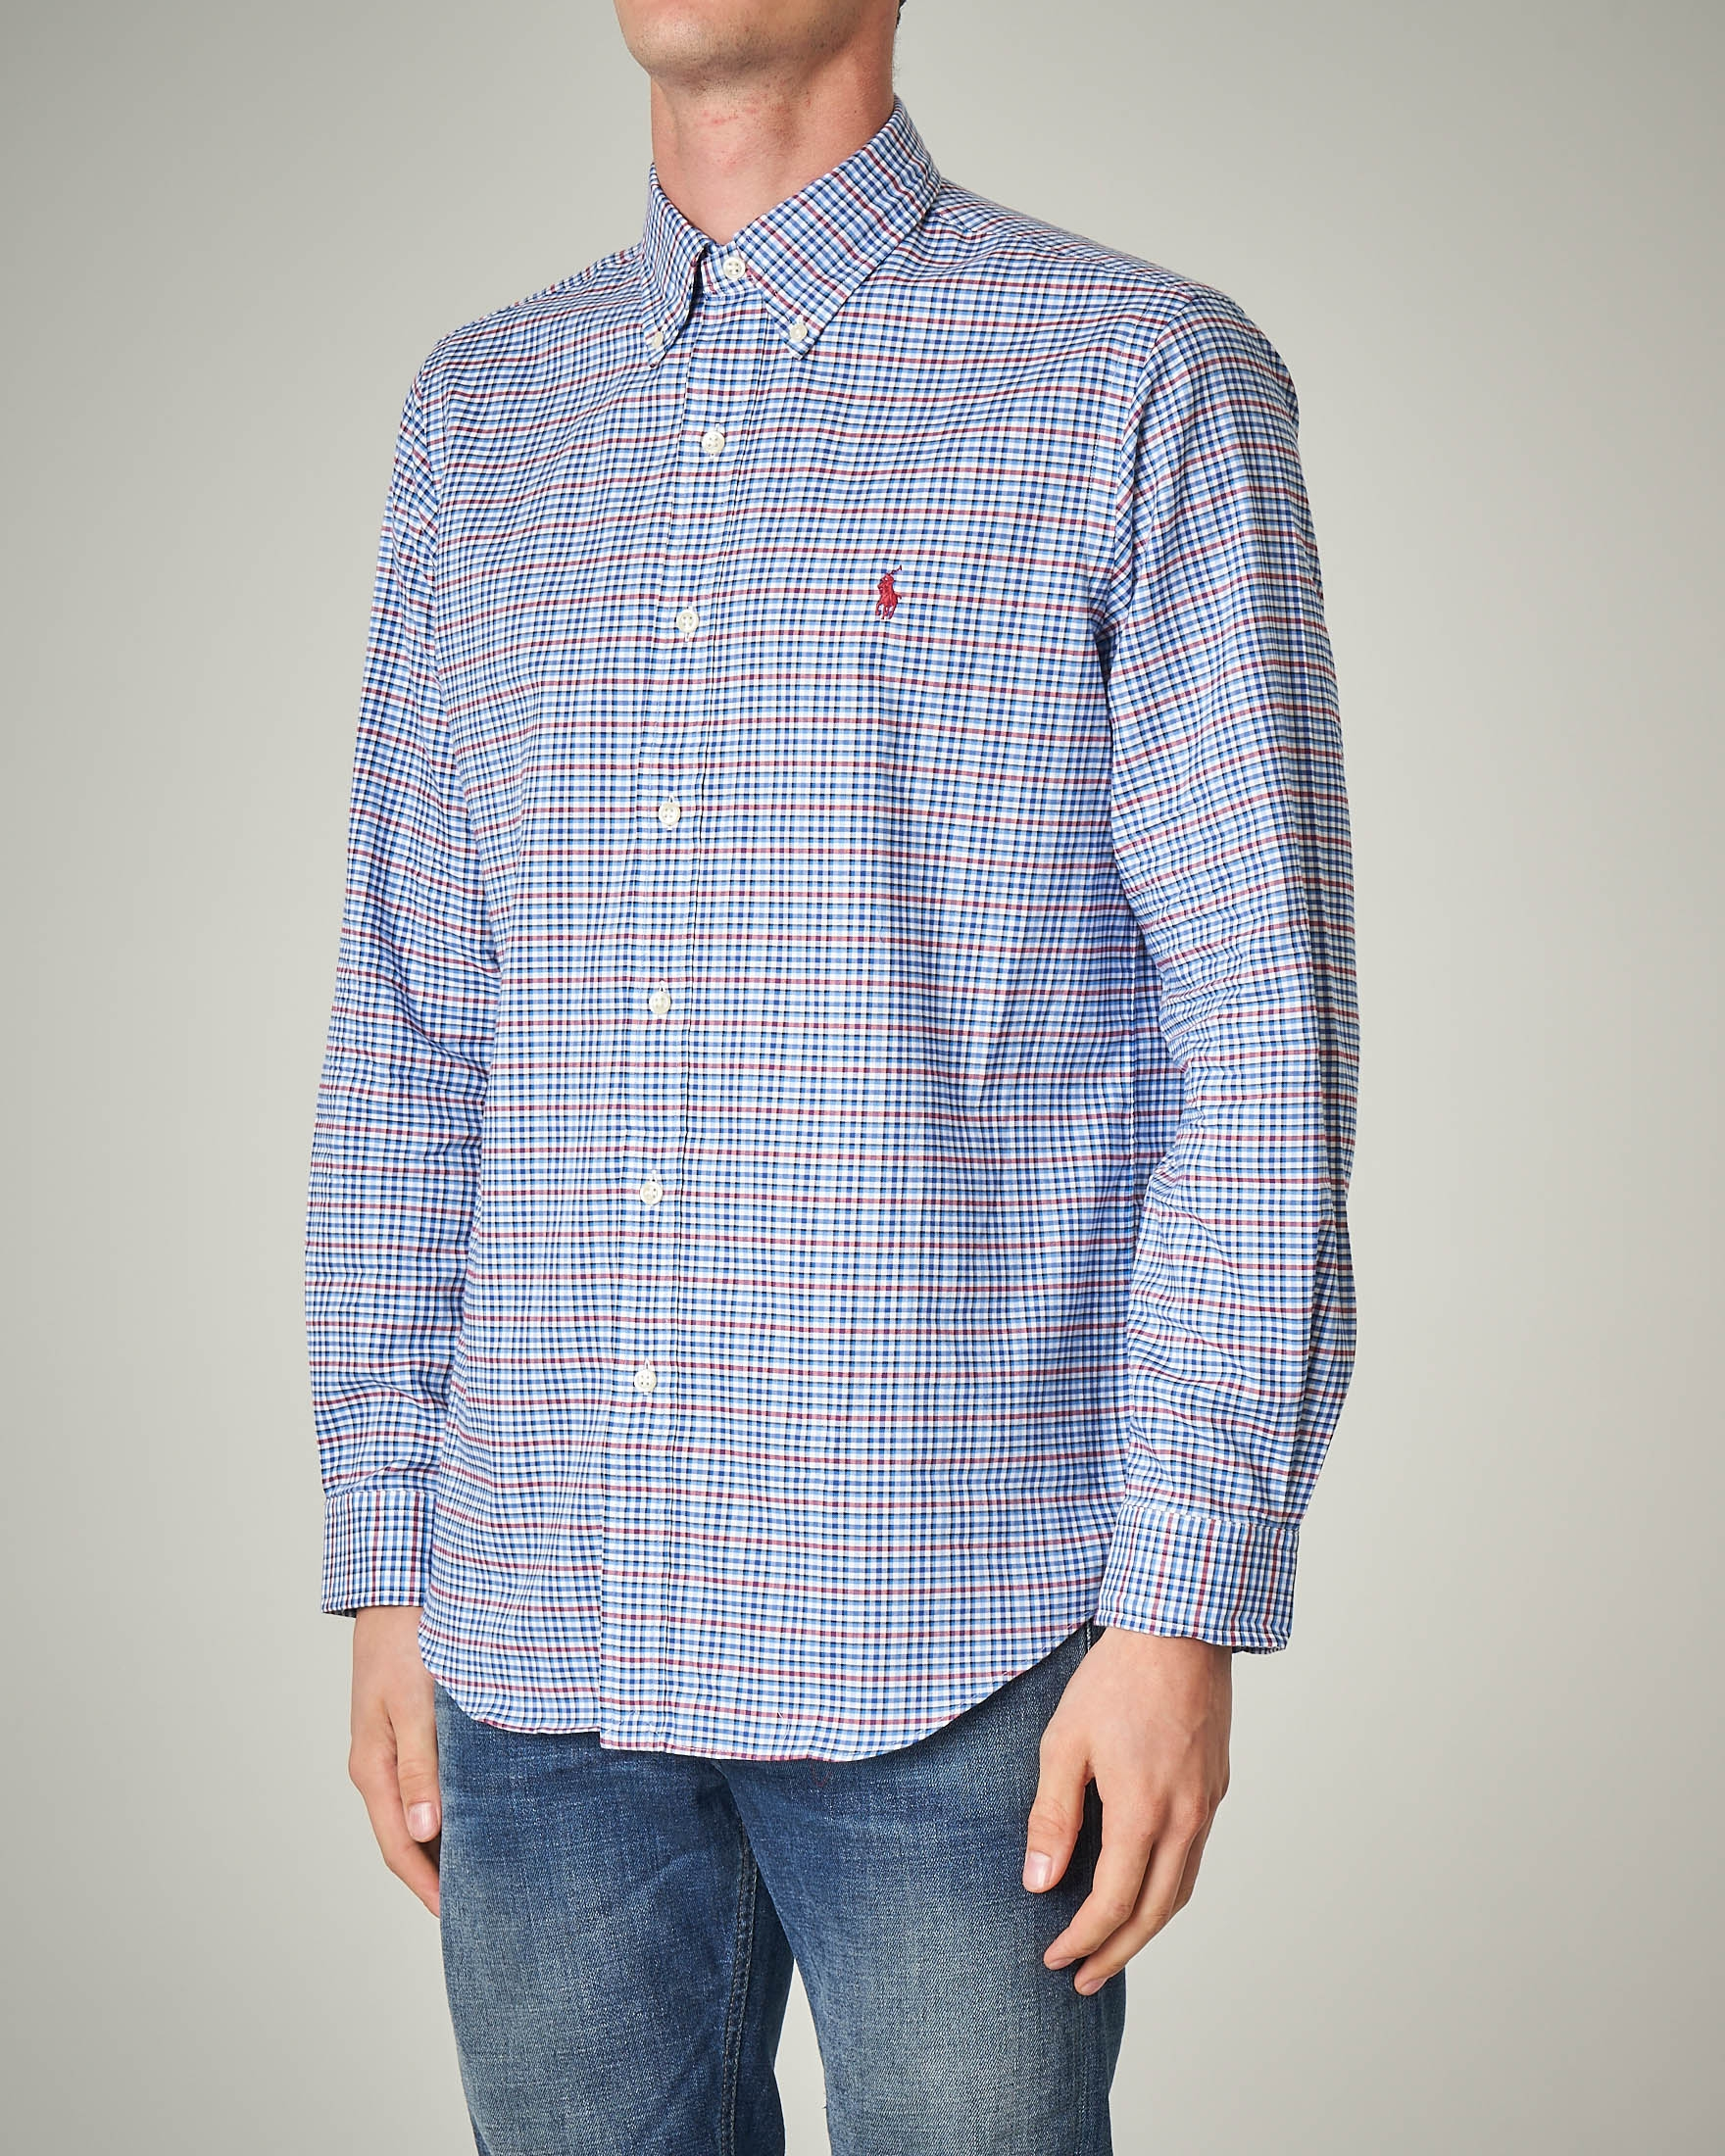 Camicia a quadri azzurri e rossi button down